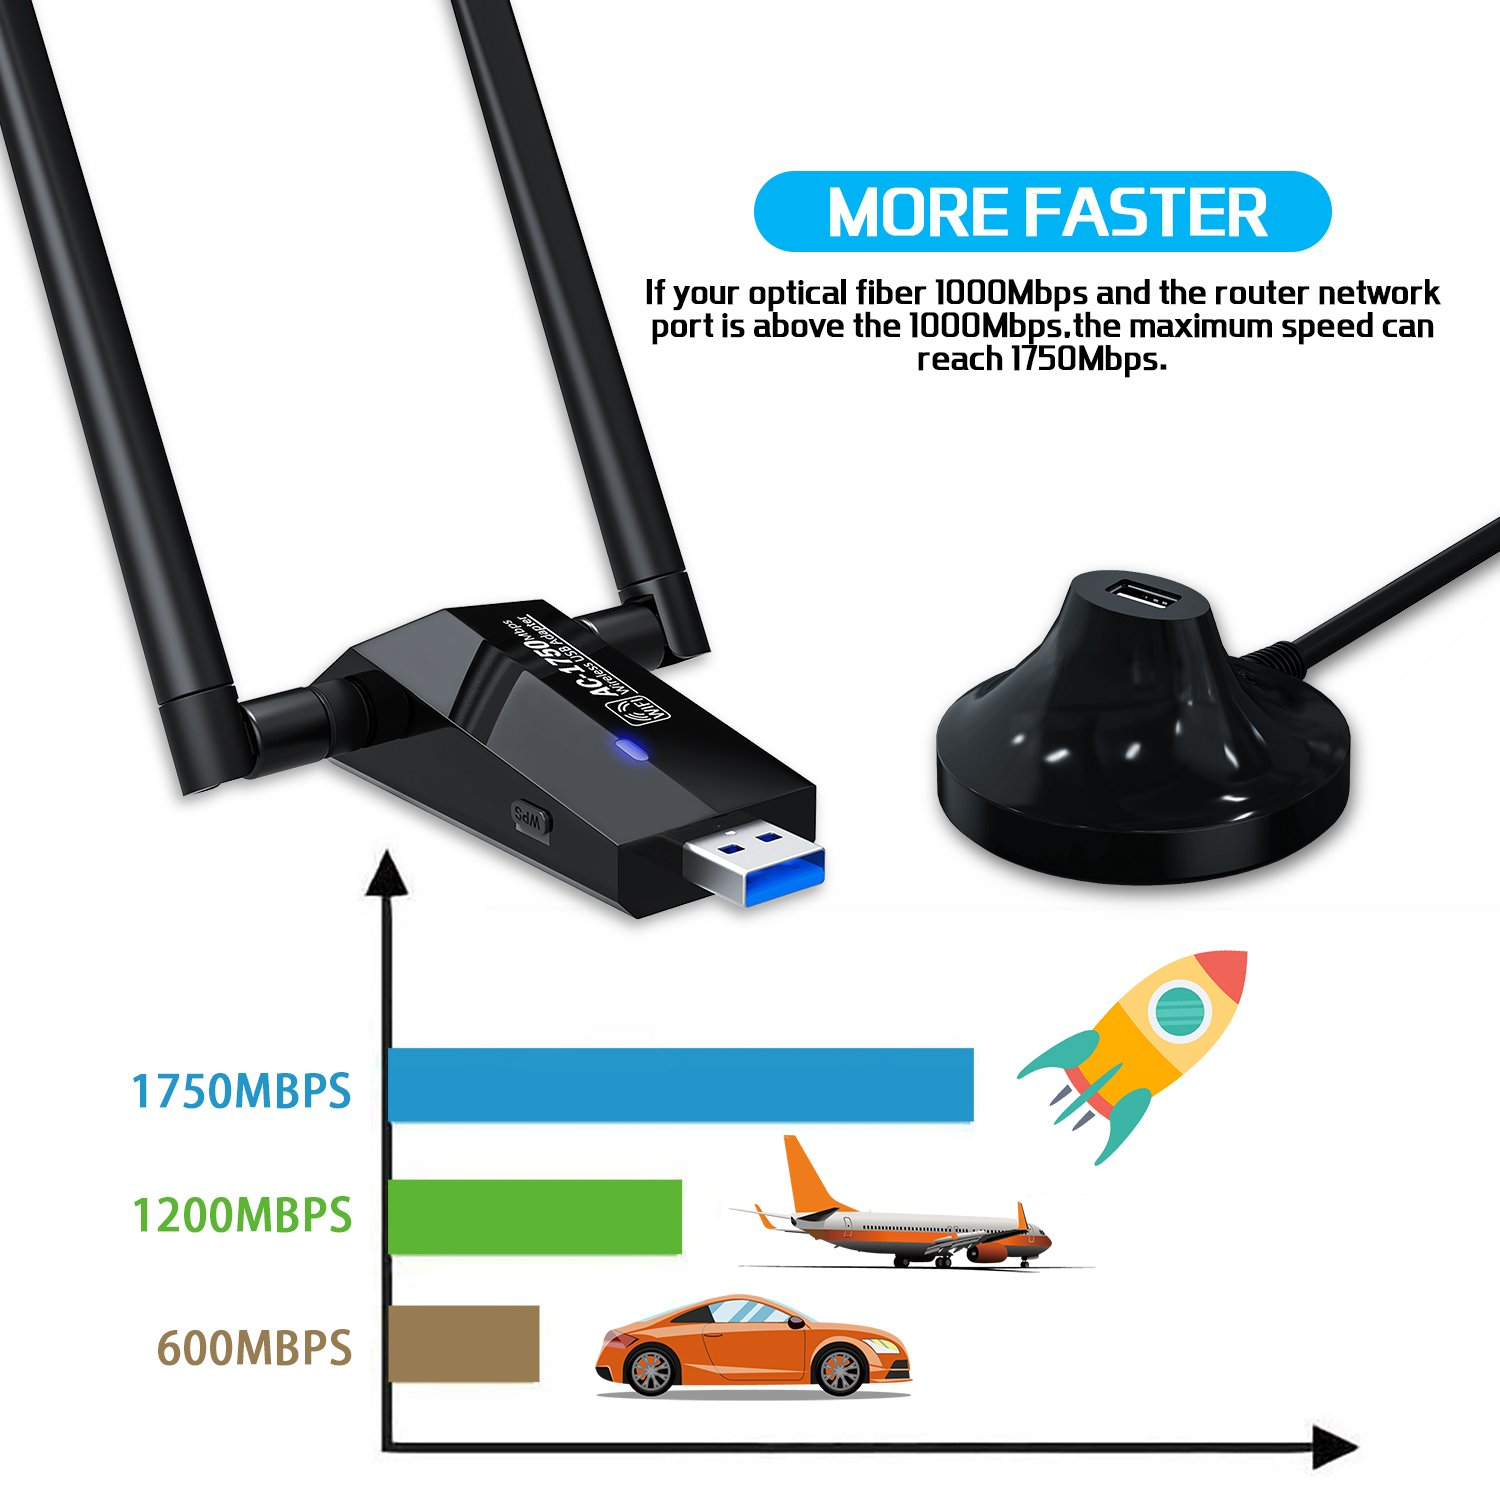 Ssnwrn USB WiFi Adapter 1750Mbps, USB 3.0 Wireless Network Wifi Dongle with 5dBi Antenna High Speed Dual Band 2.4GHz/5.8GHz 1300Mbps 802.11ac/b/g/n Wireless Adapter for Desktop/Laptop/PC by Ssnwrn (Image #4)